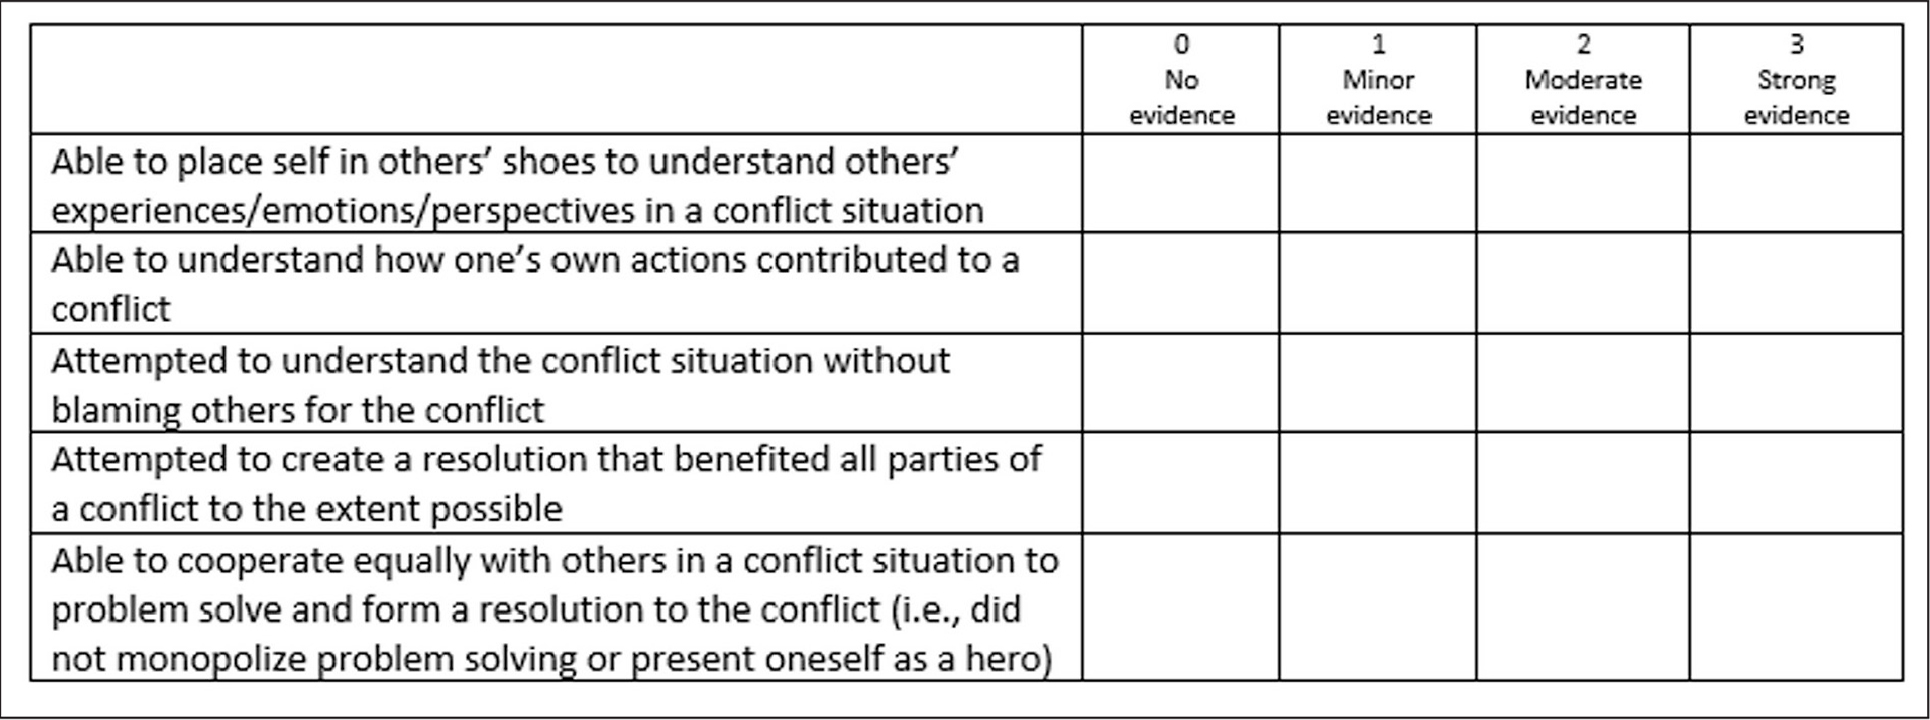 Emotional Intelligence Admission Essay scale. ©2017 S. A. Gutman and J. P. Falk-Kessler. Reprinted with permission from S. A. Gutman and J. P. Falk-Kessler.